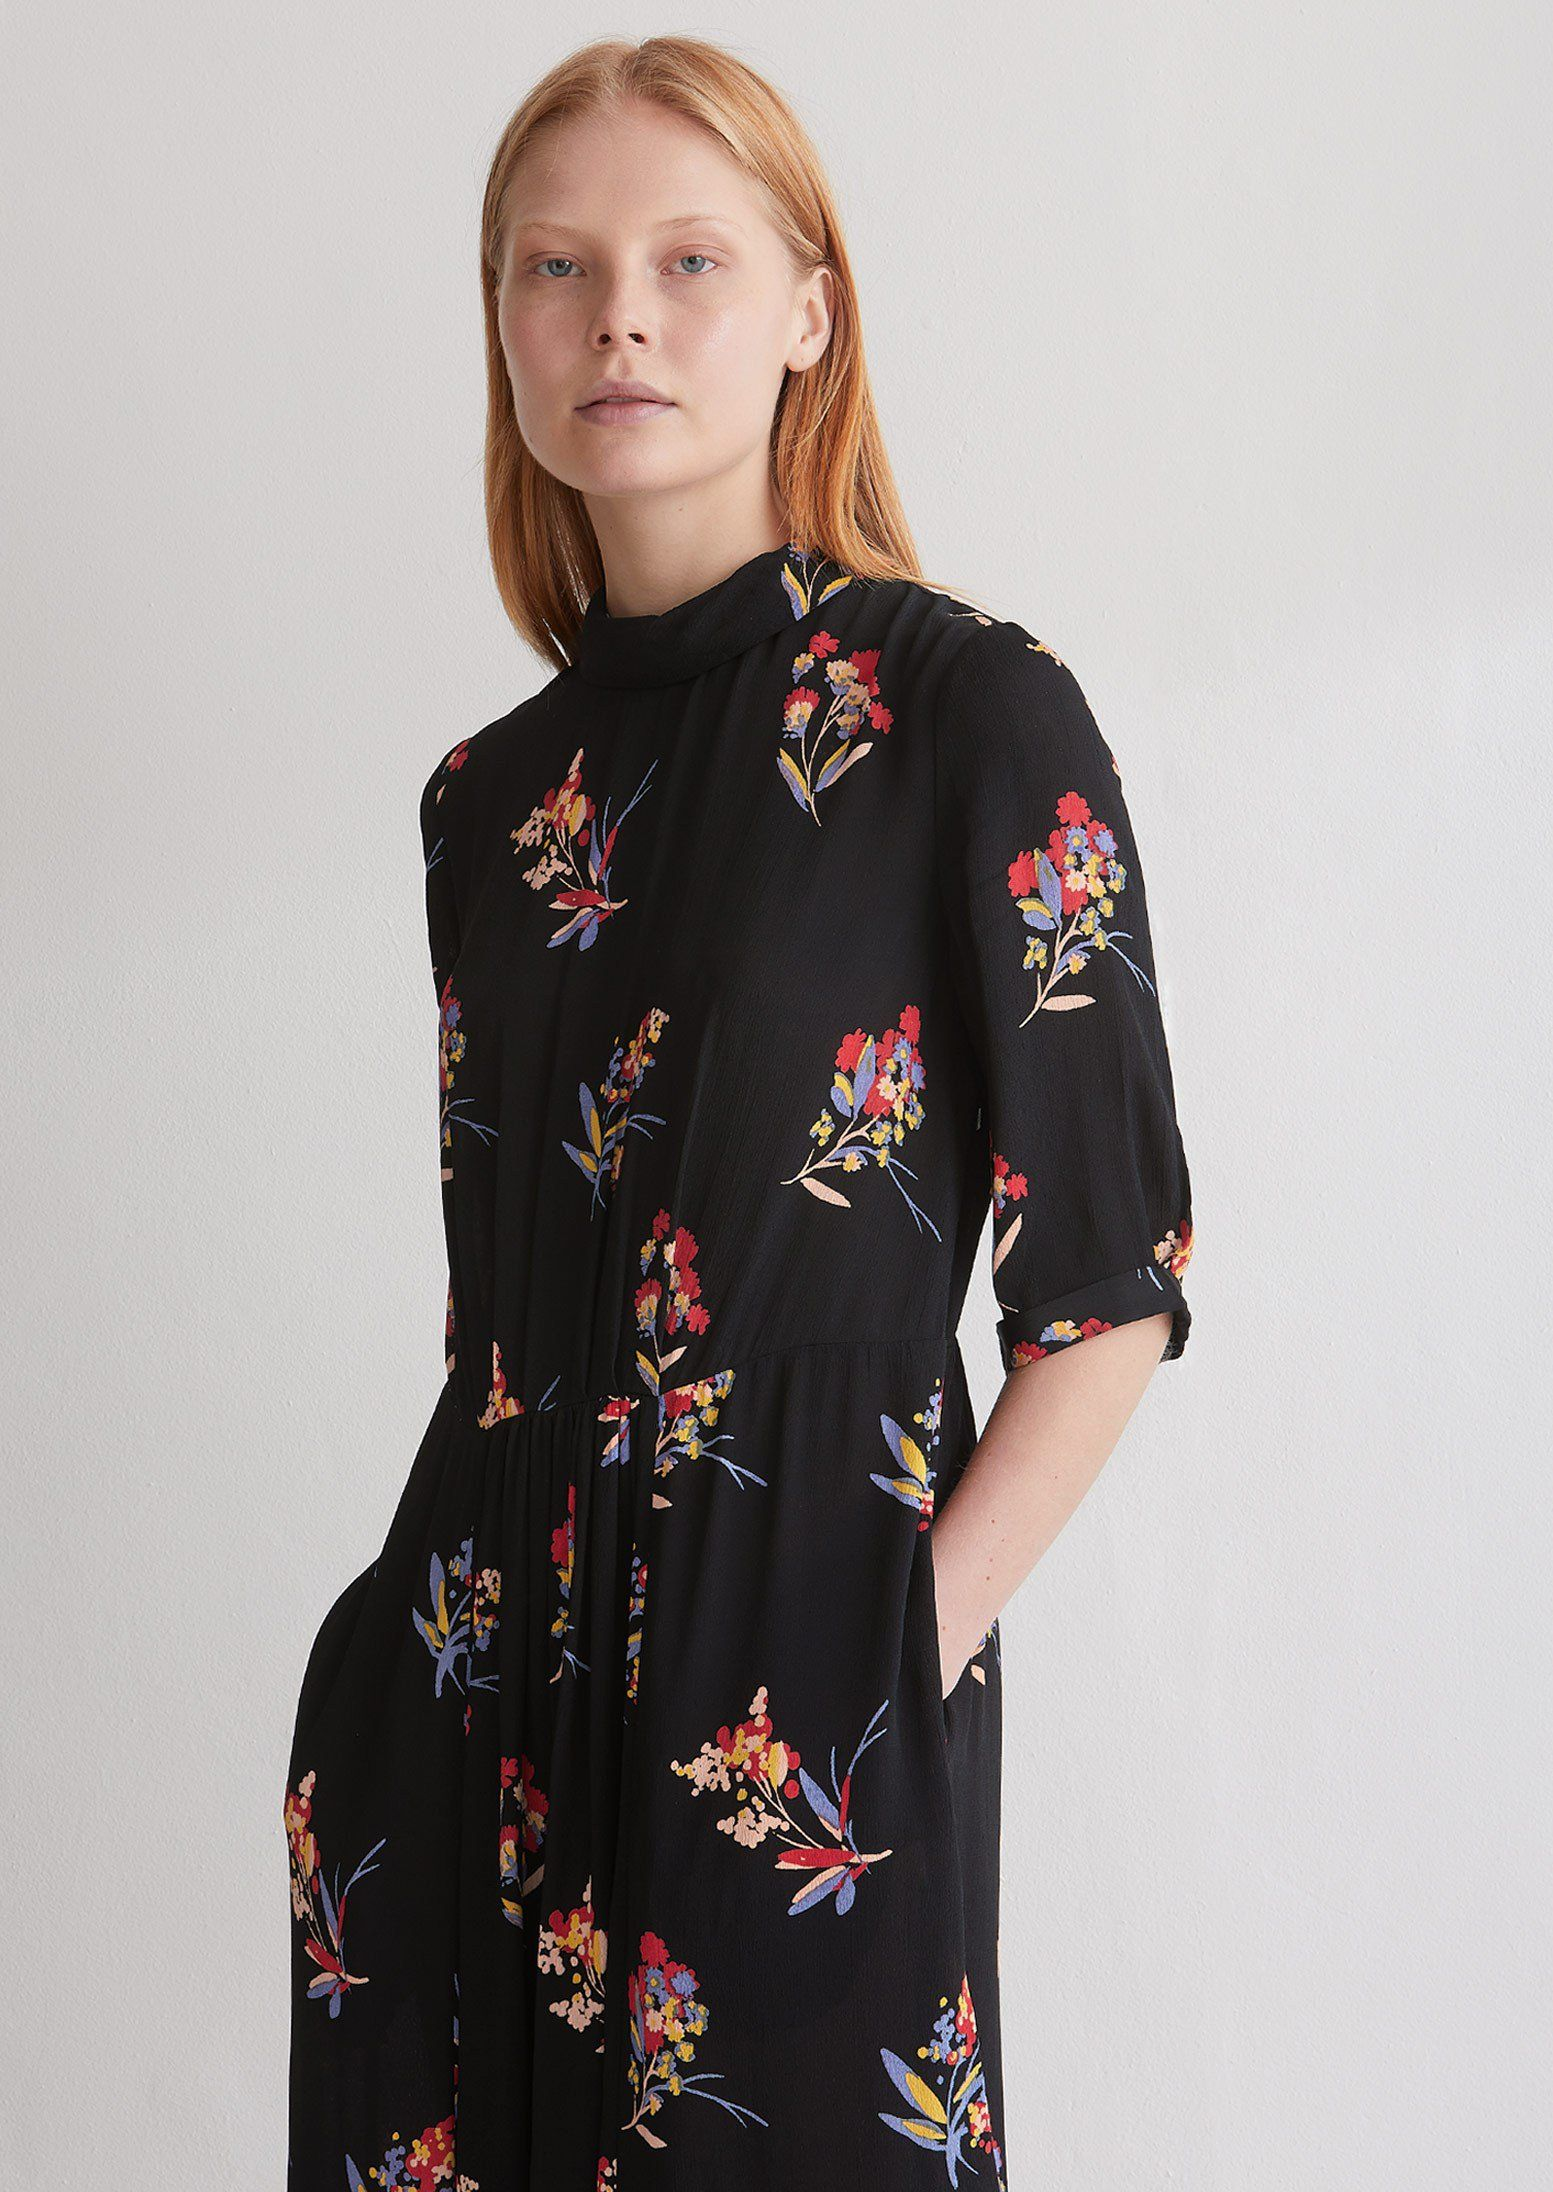 7abe0512e77f Maie Print Dress in 2019 | Style | Floral tops, Dresses, Fashion